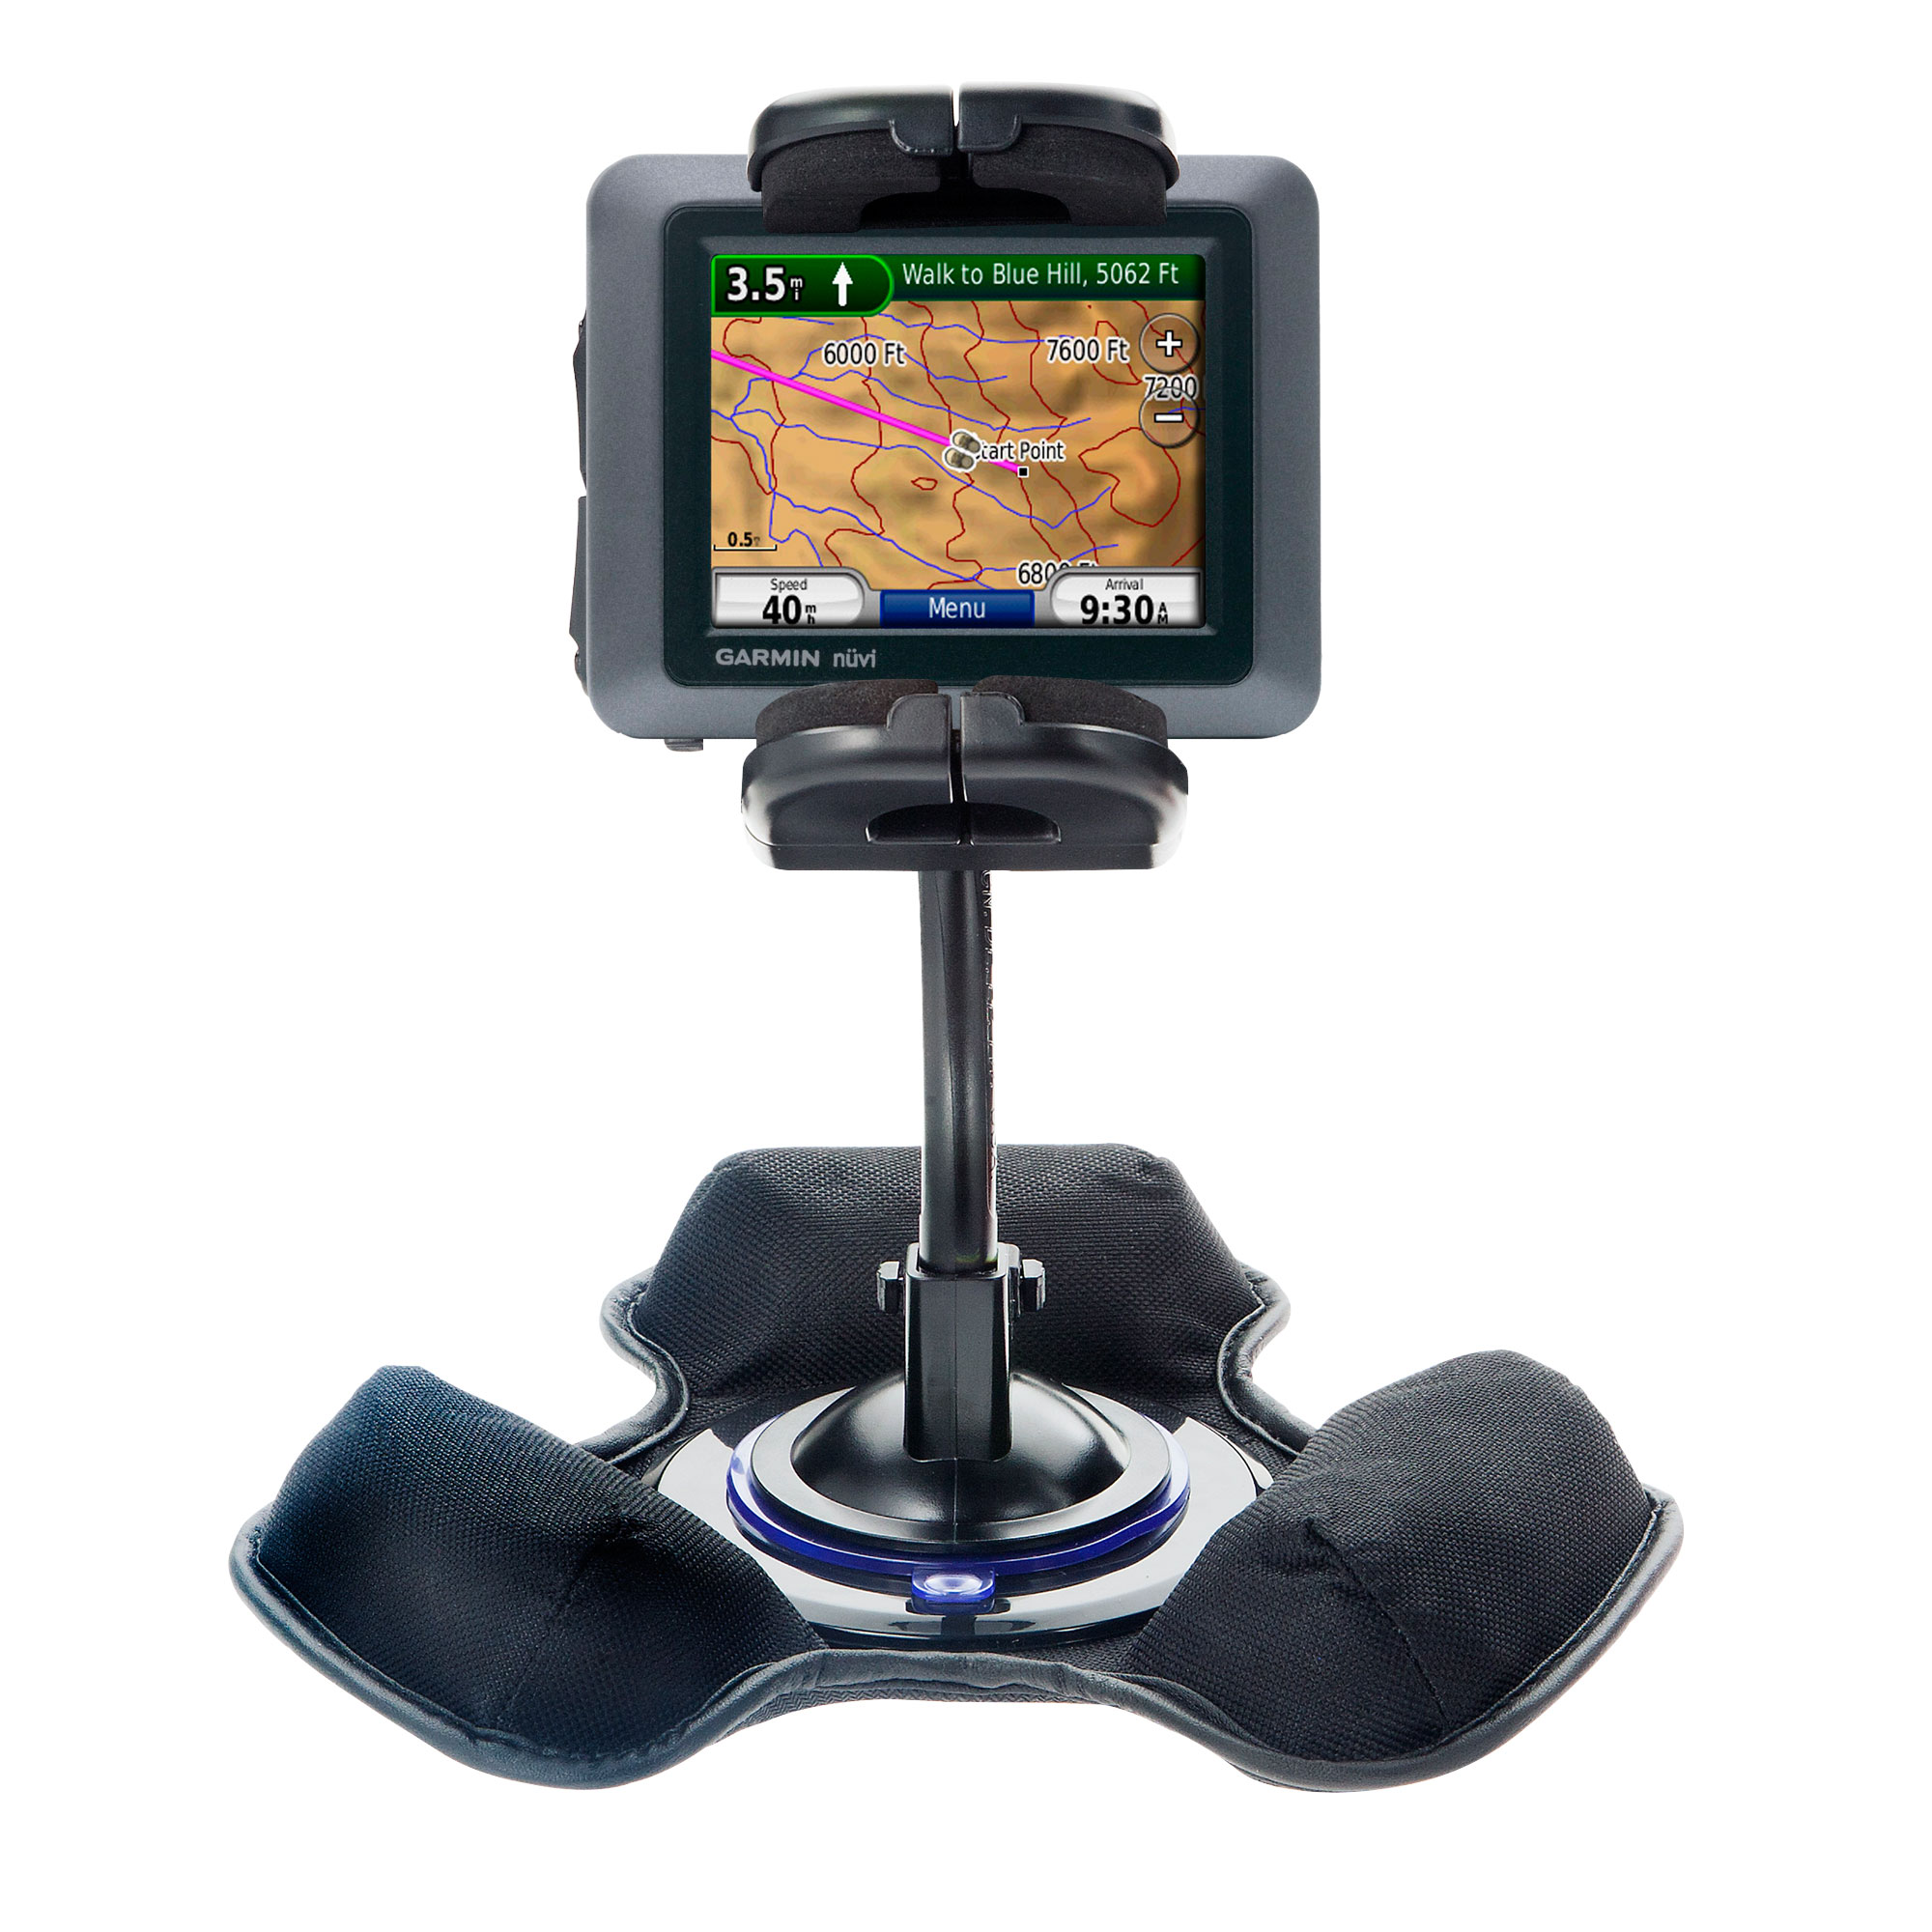 Dash and Windshield Holder compatible with the Garmin Nuvi 500